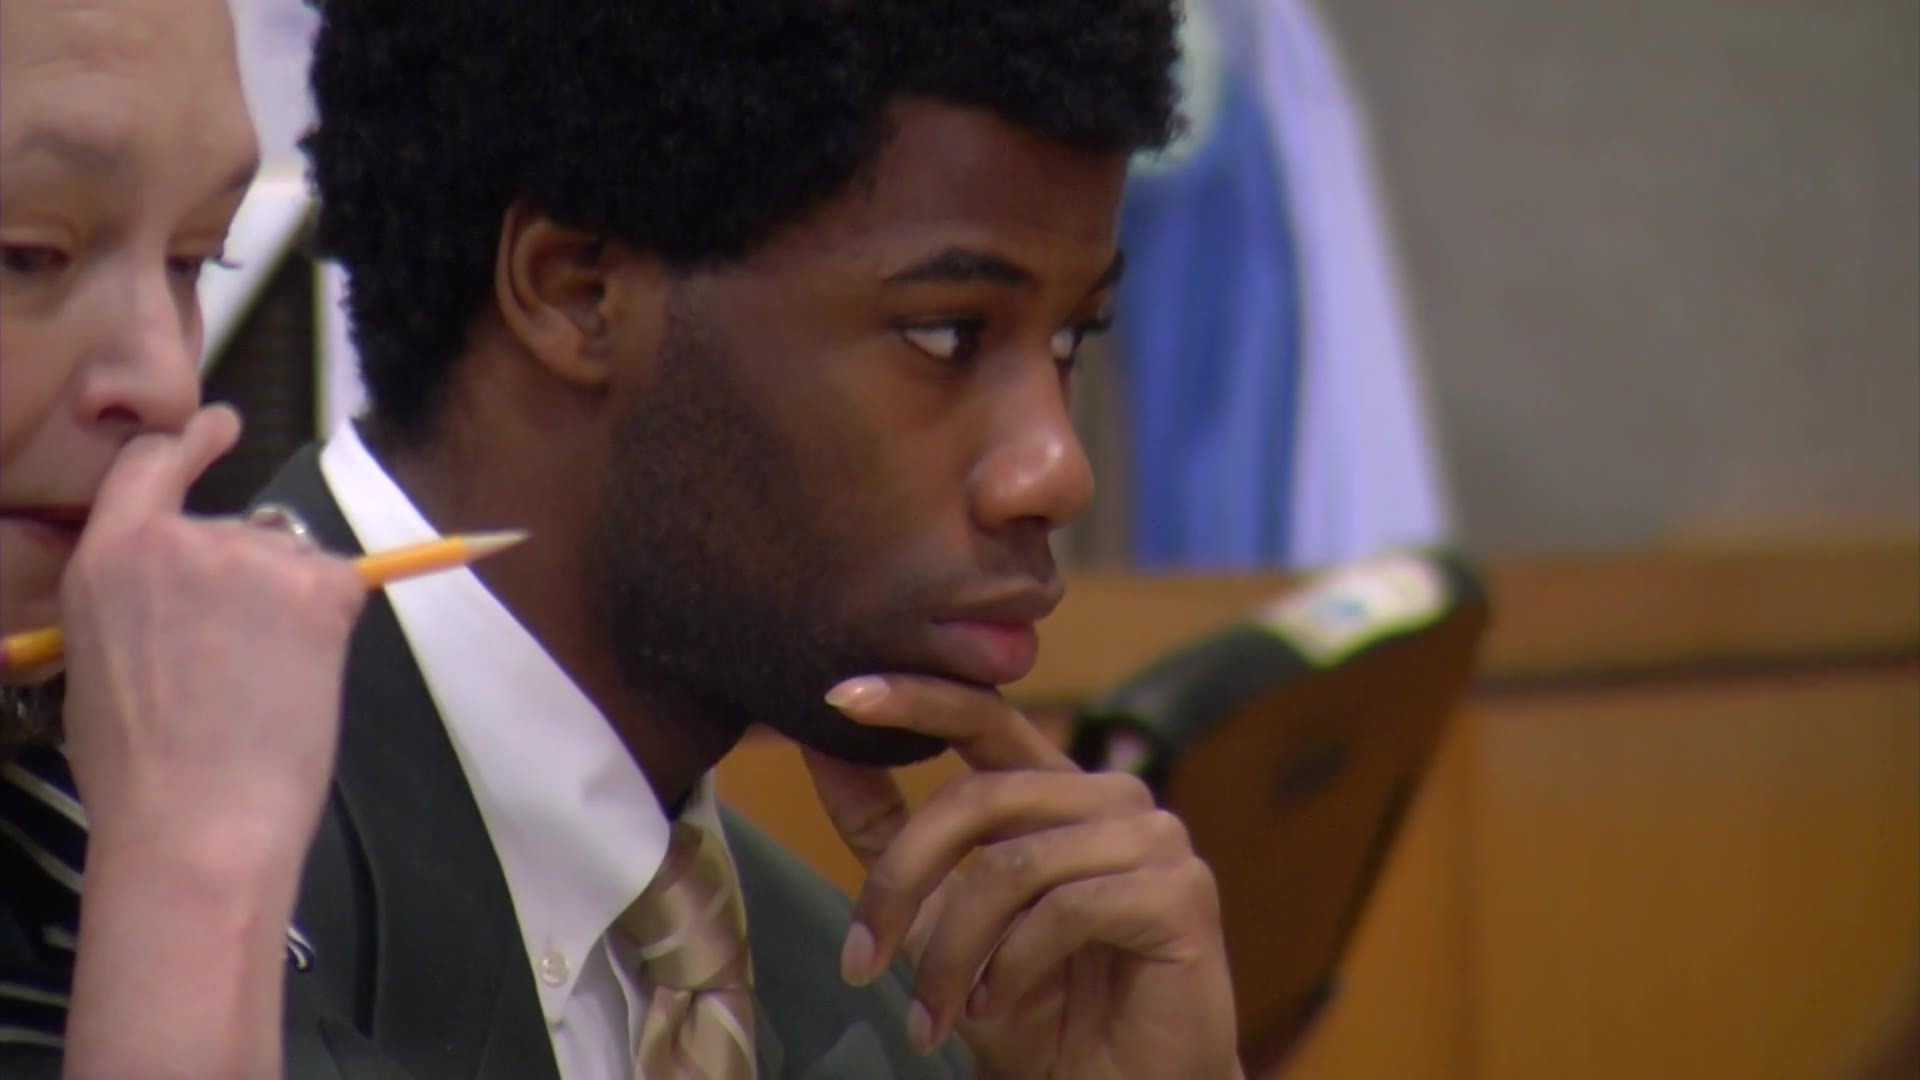 Meechaiel Criner in court on July 9, 2018